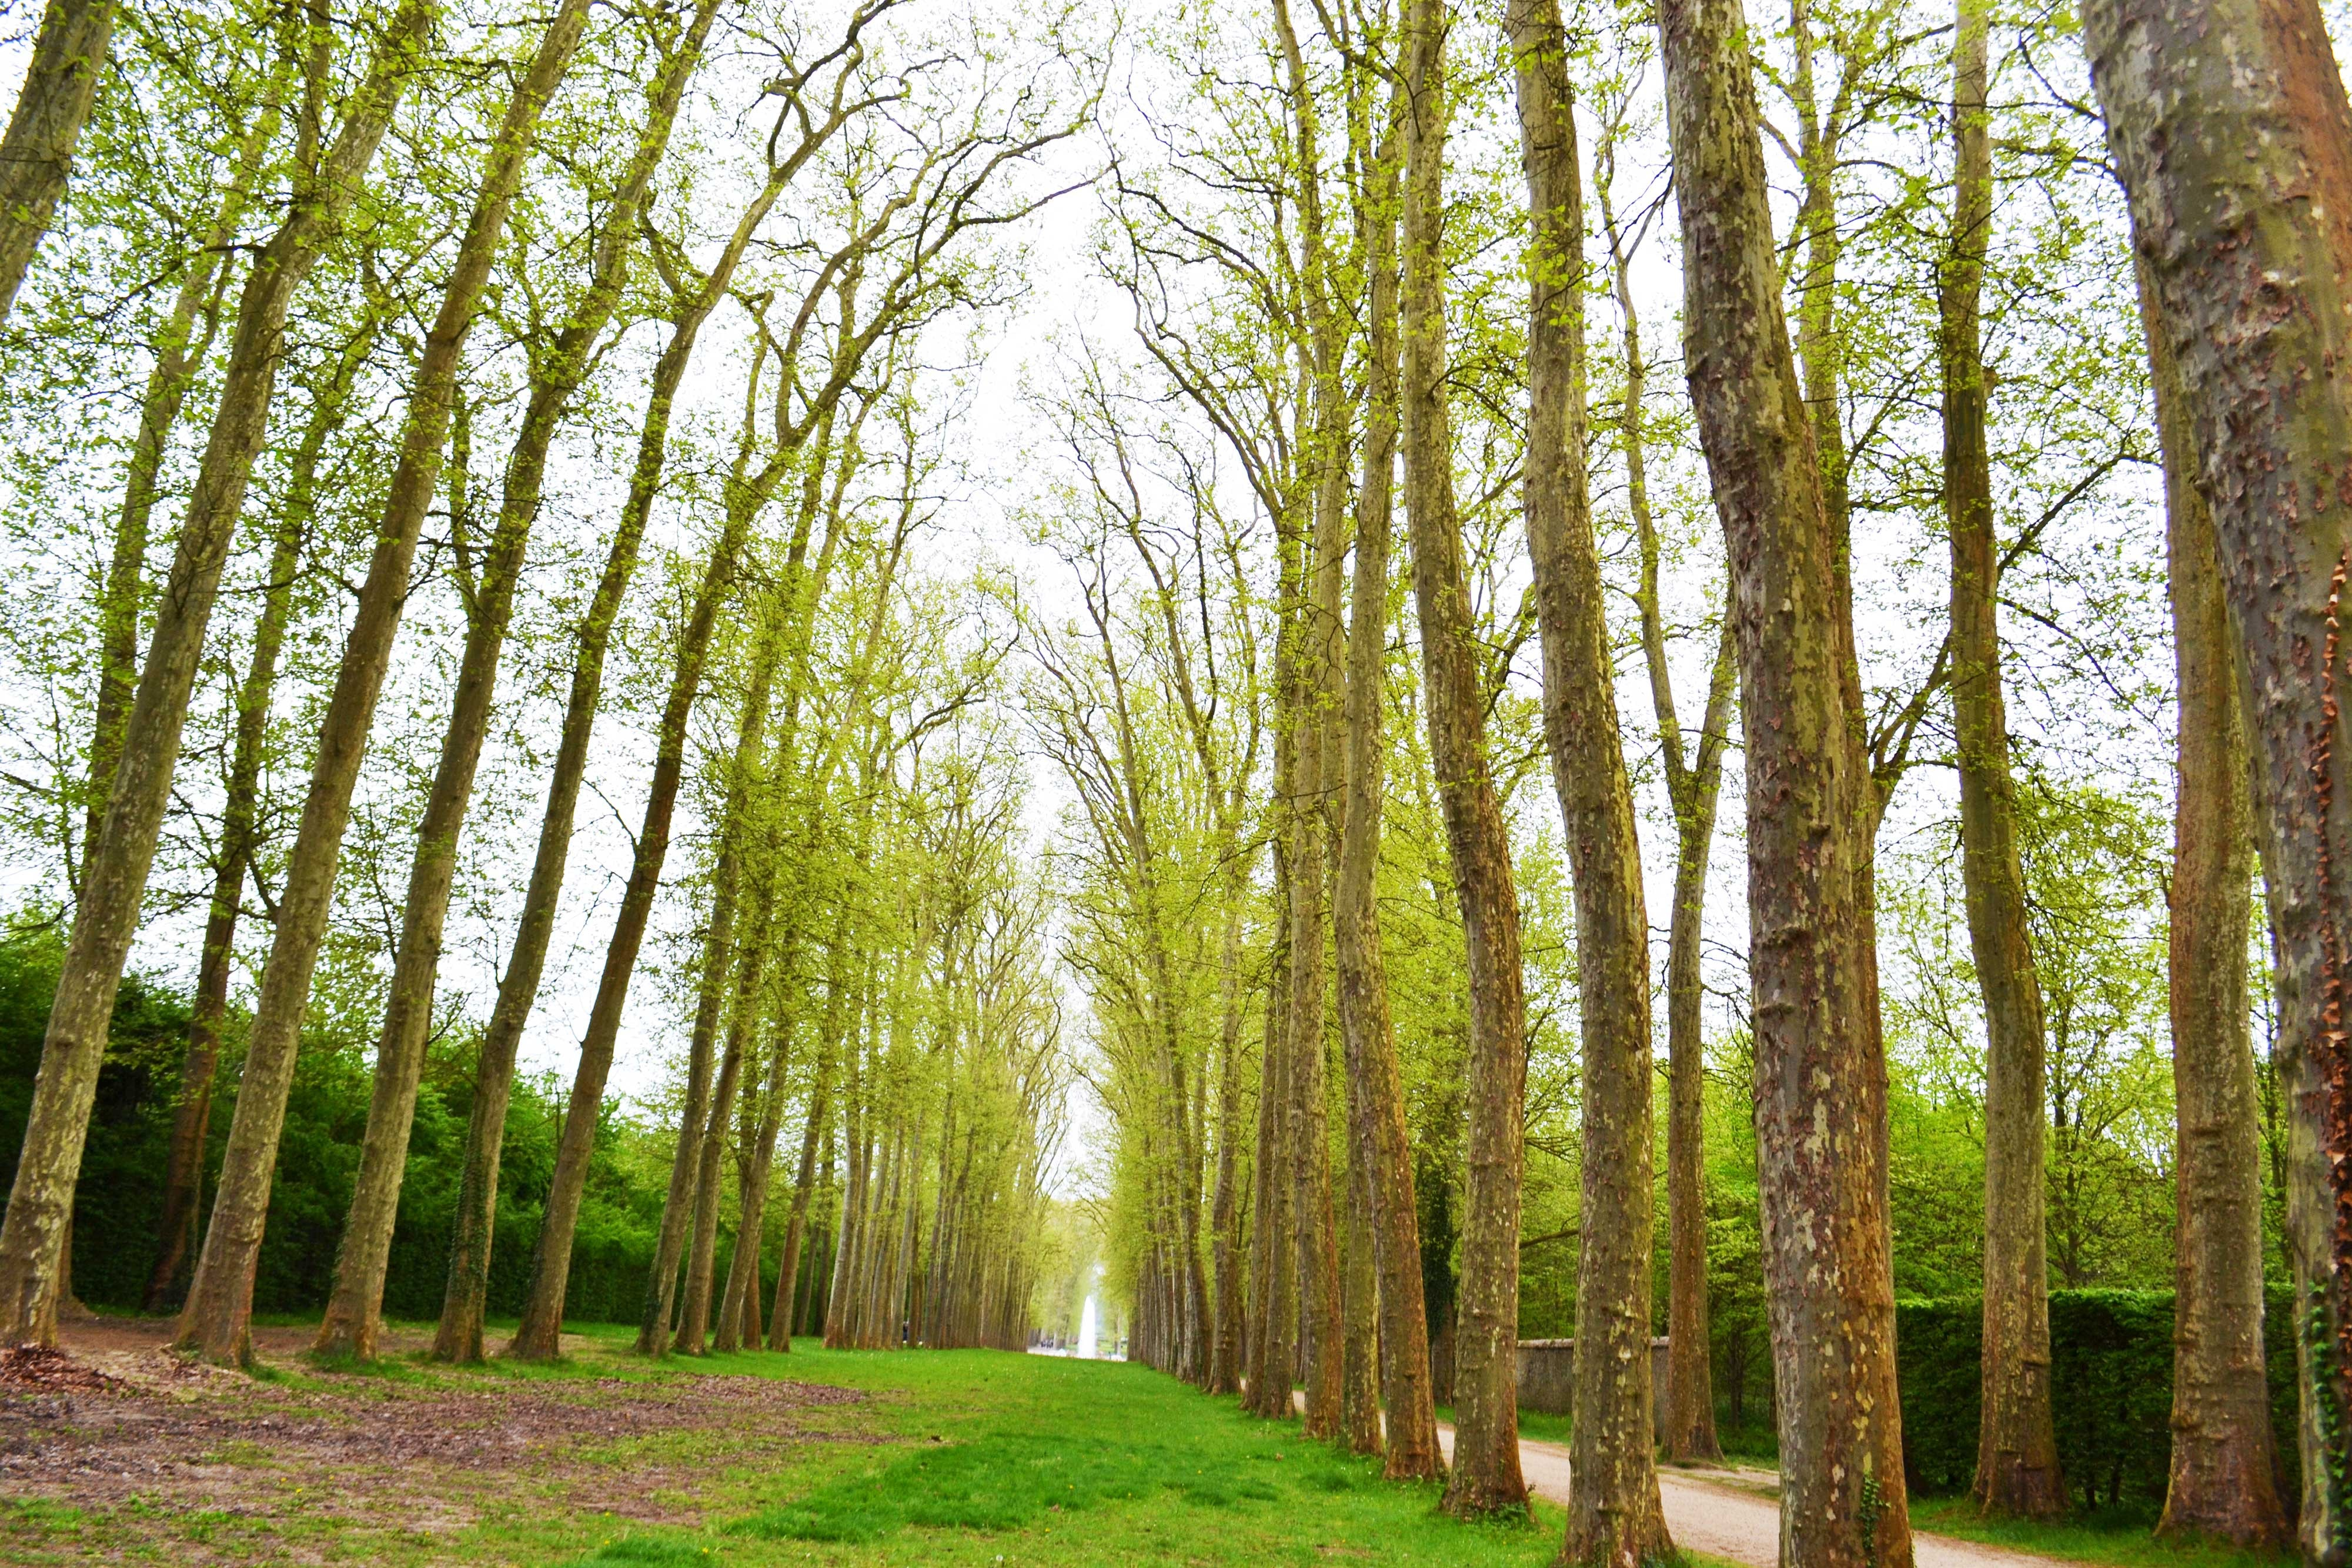 A path surrounded by trees in the gardens of Versailles